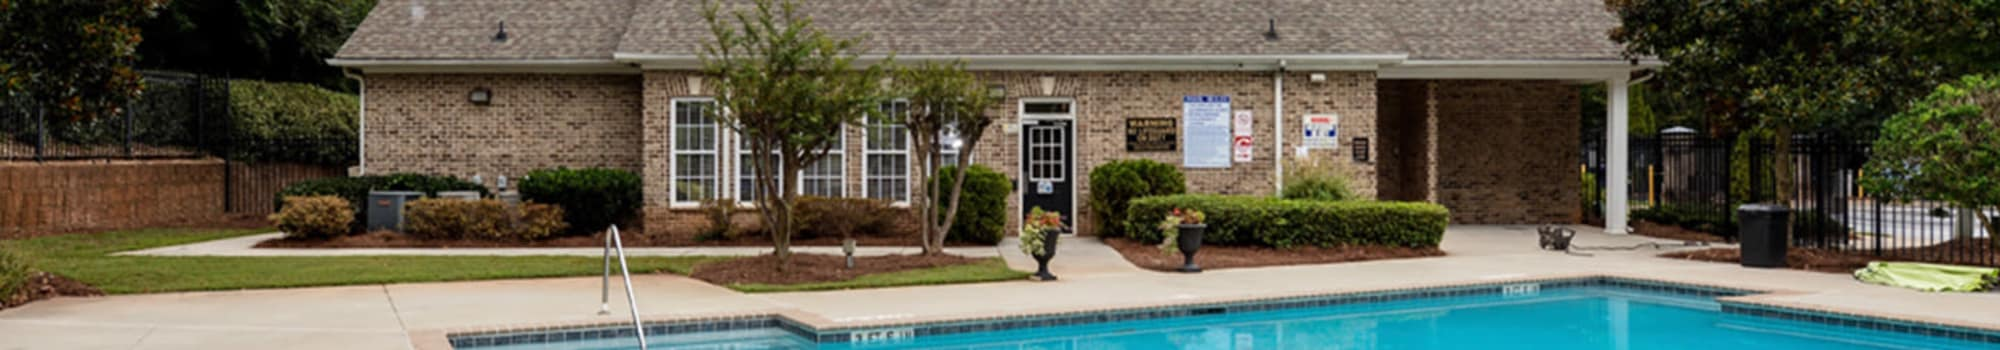 Pet-friendly apartments at Retreat at Stonecrest in Lithonia, Georgia